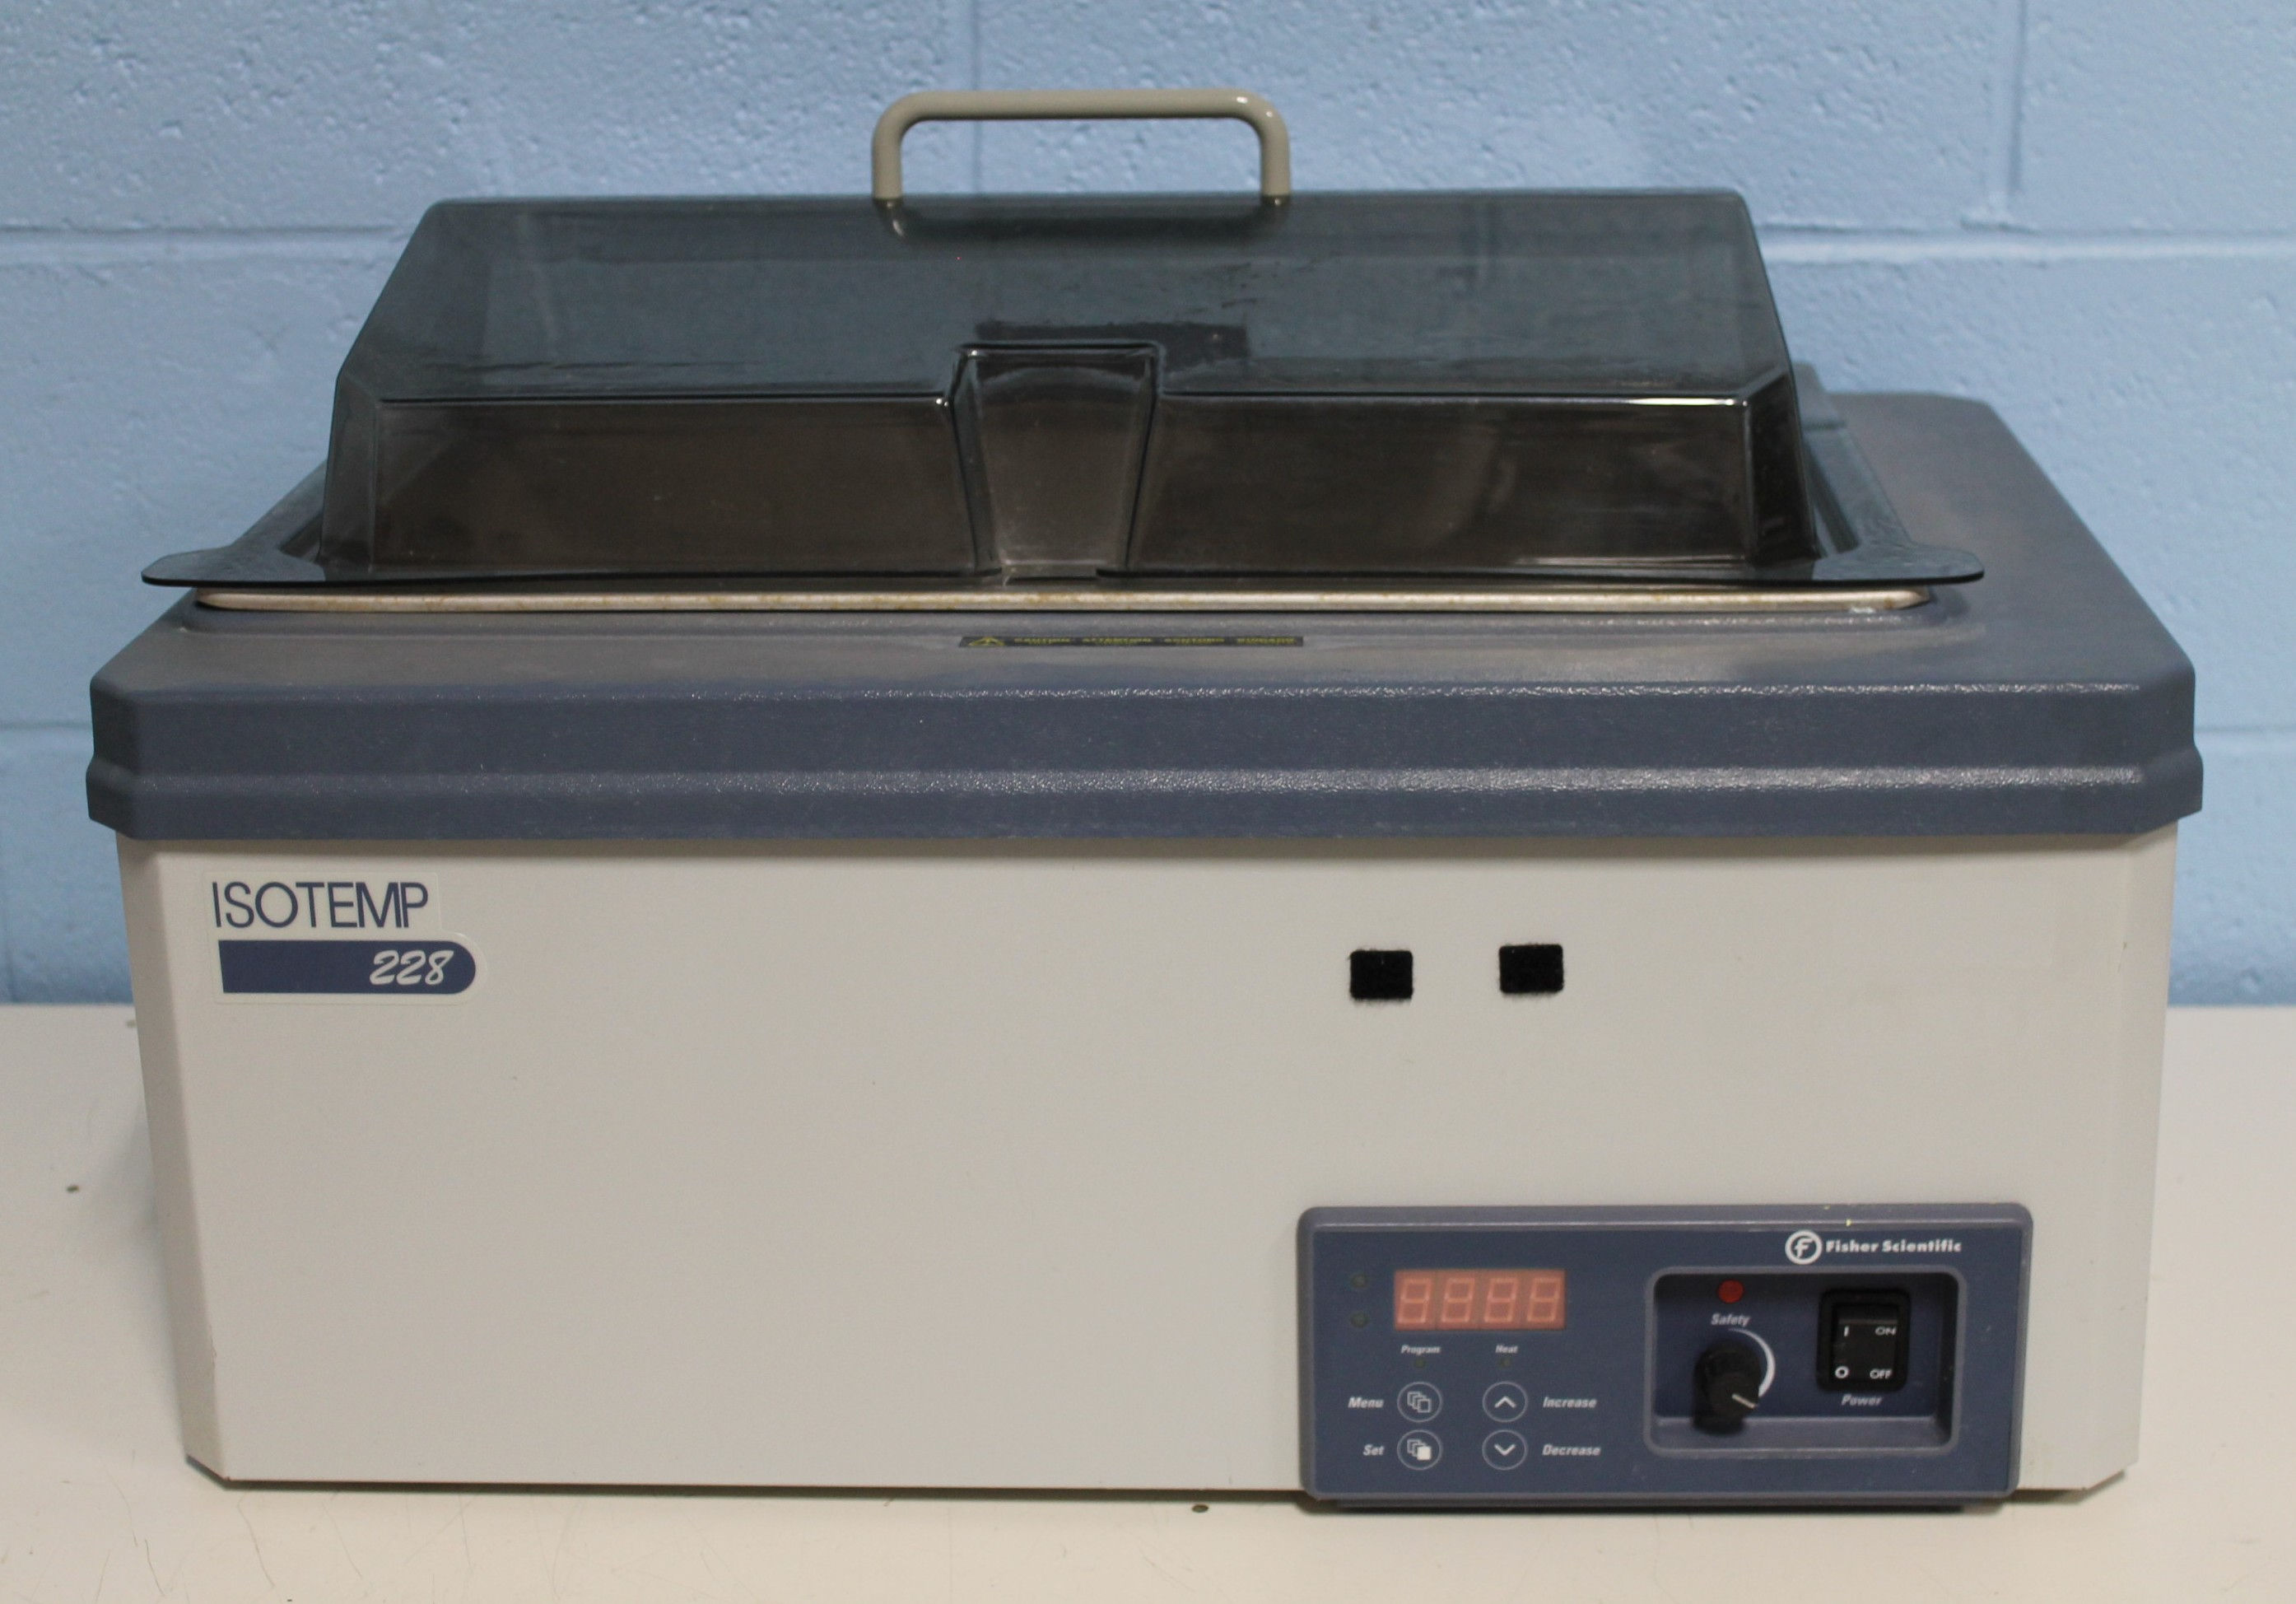 Fisher Scientific Isotemp 228 Heated Water Bath Image